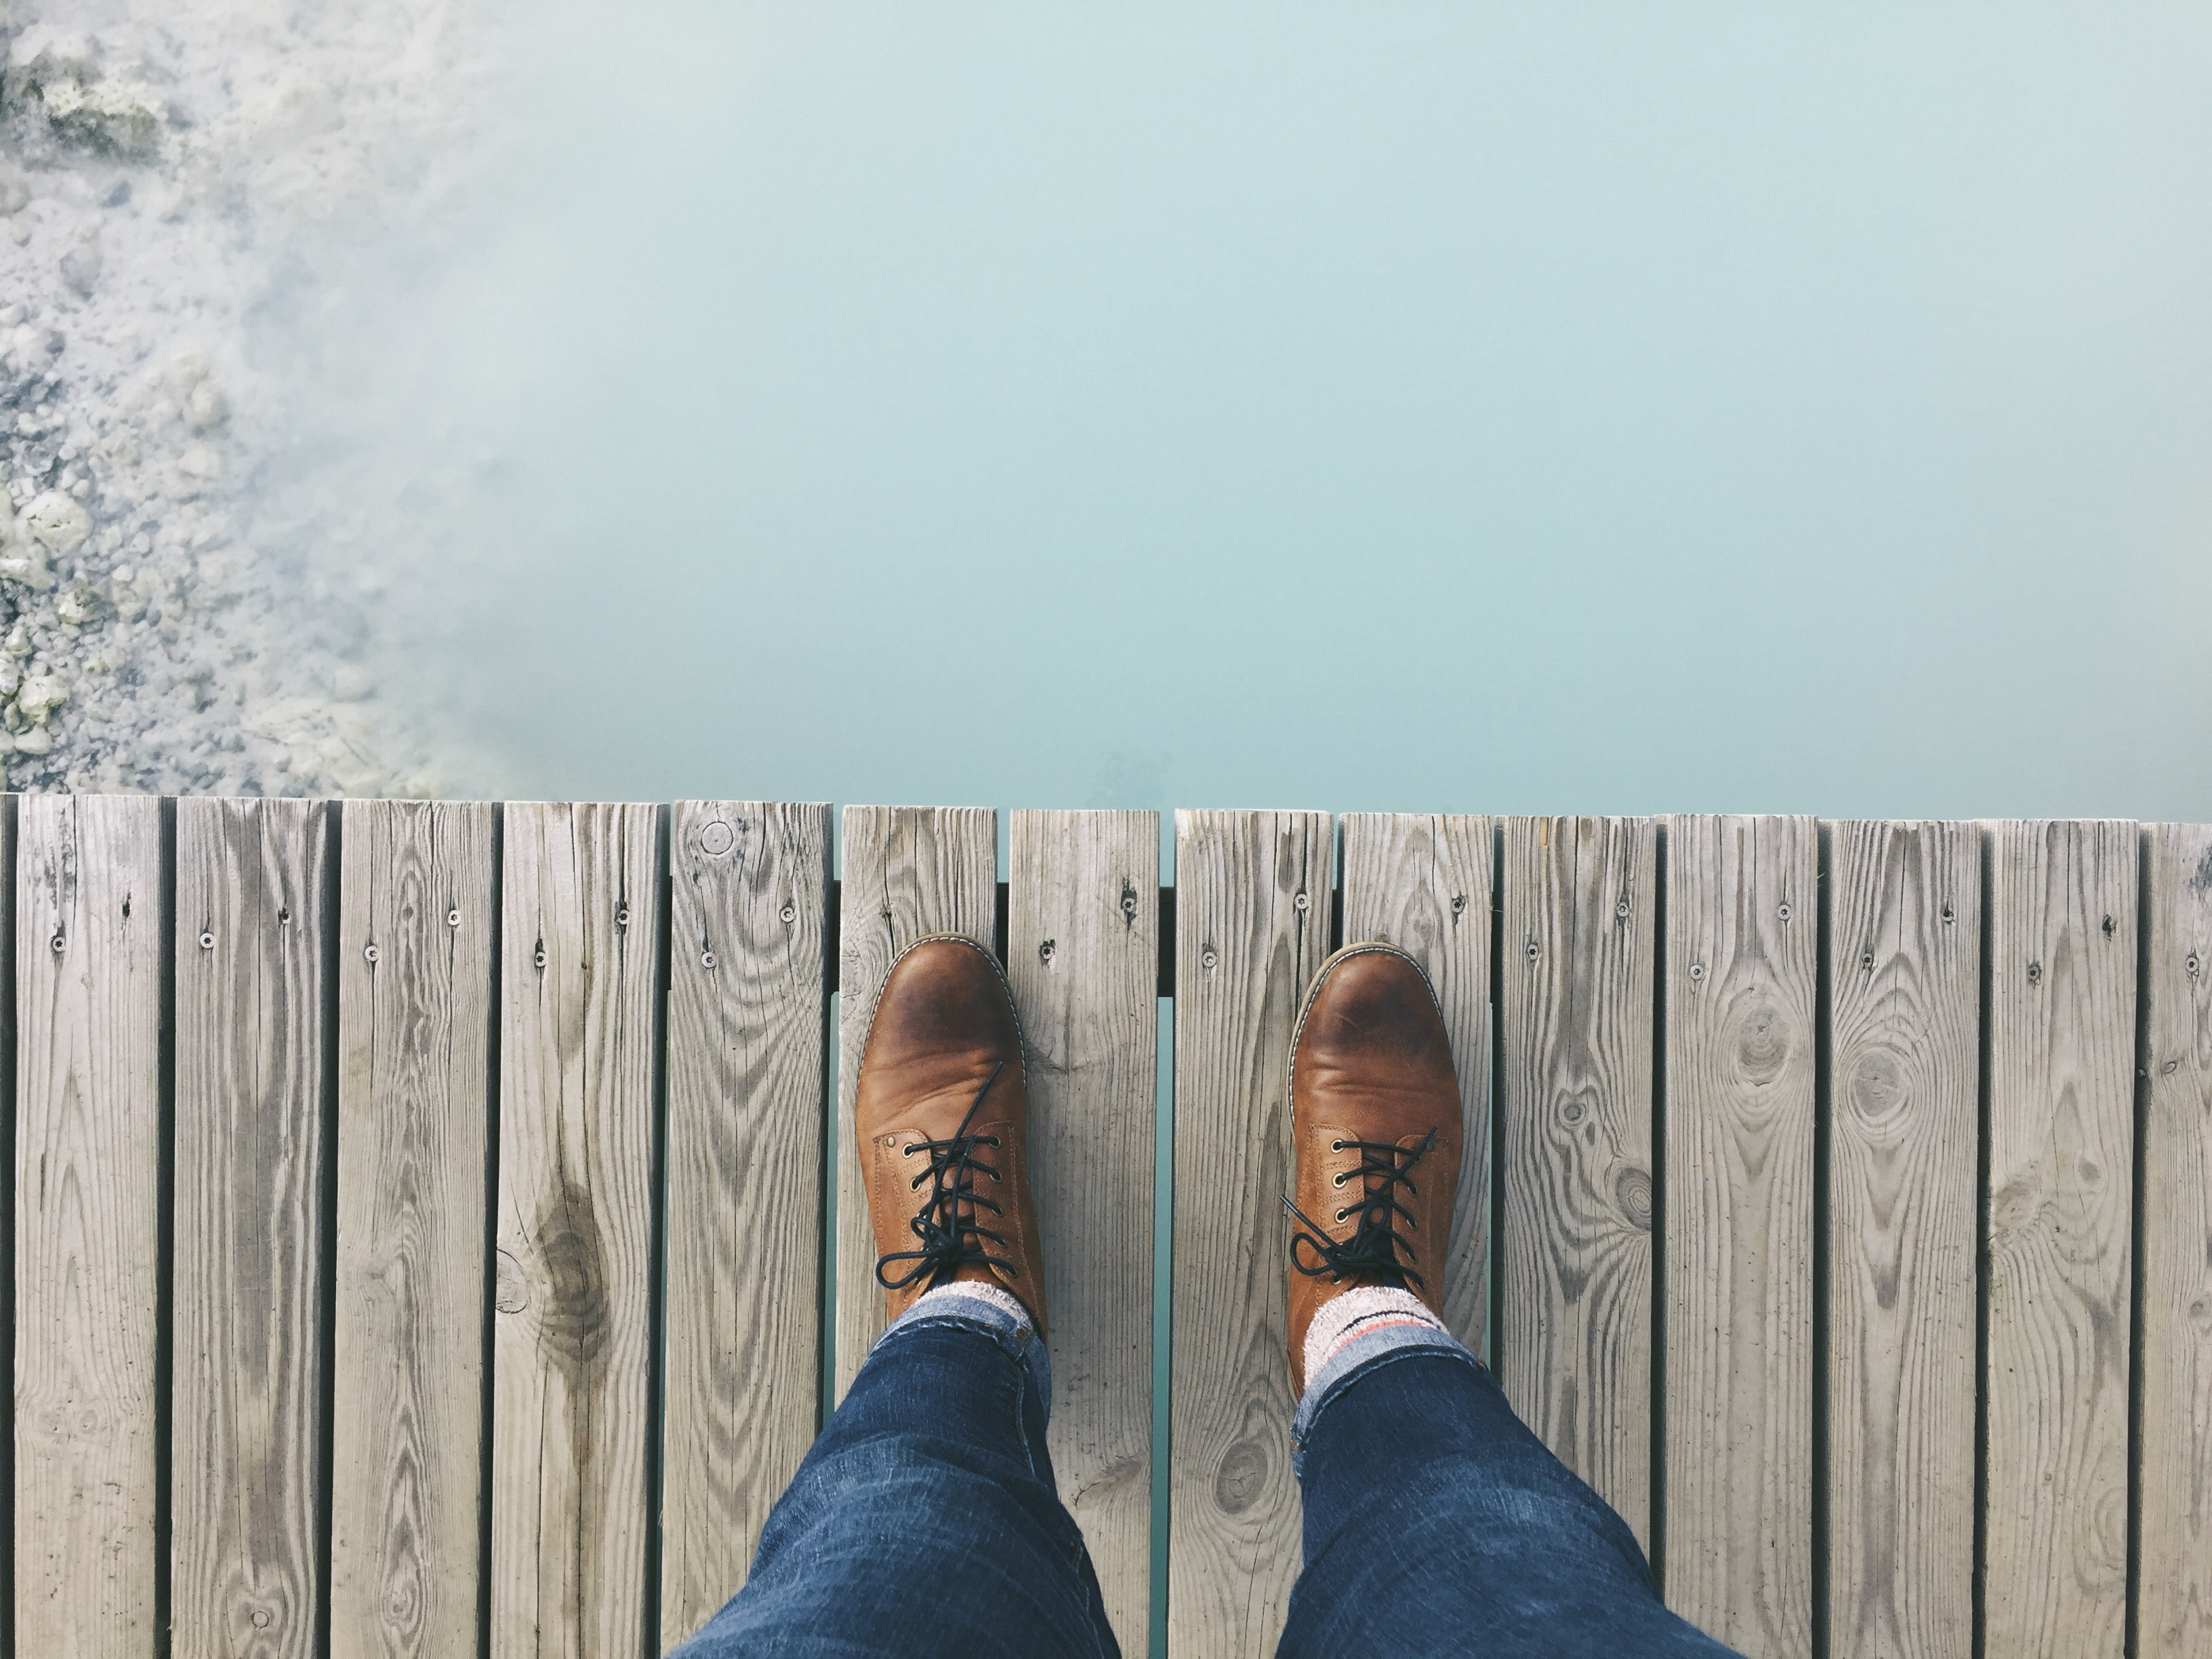 A person standing on a dock looking down on their brown shoes next to the water.